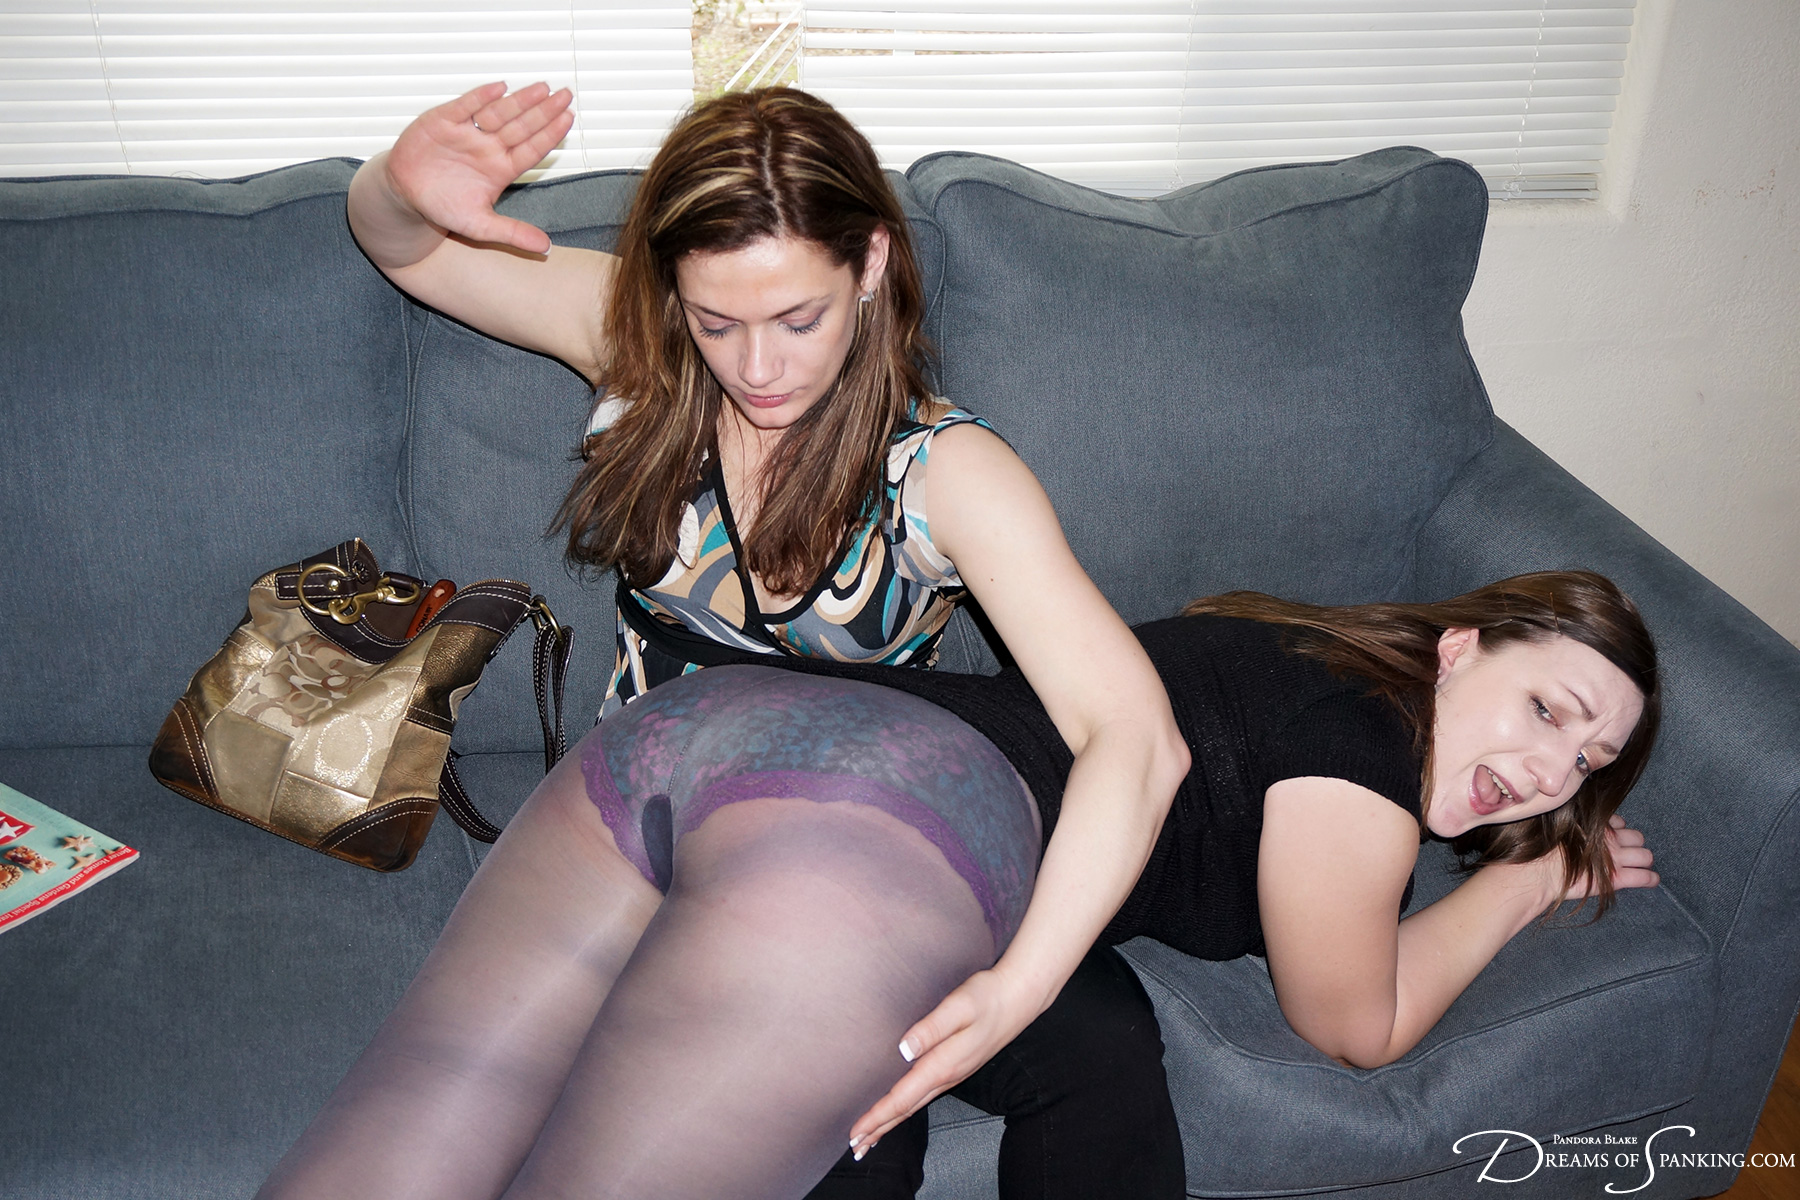 Pandora Blake spanked with a hairbrush by Ten Amorette